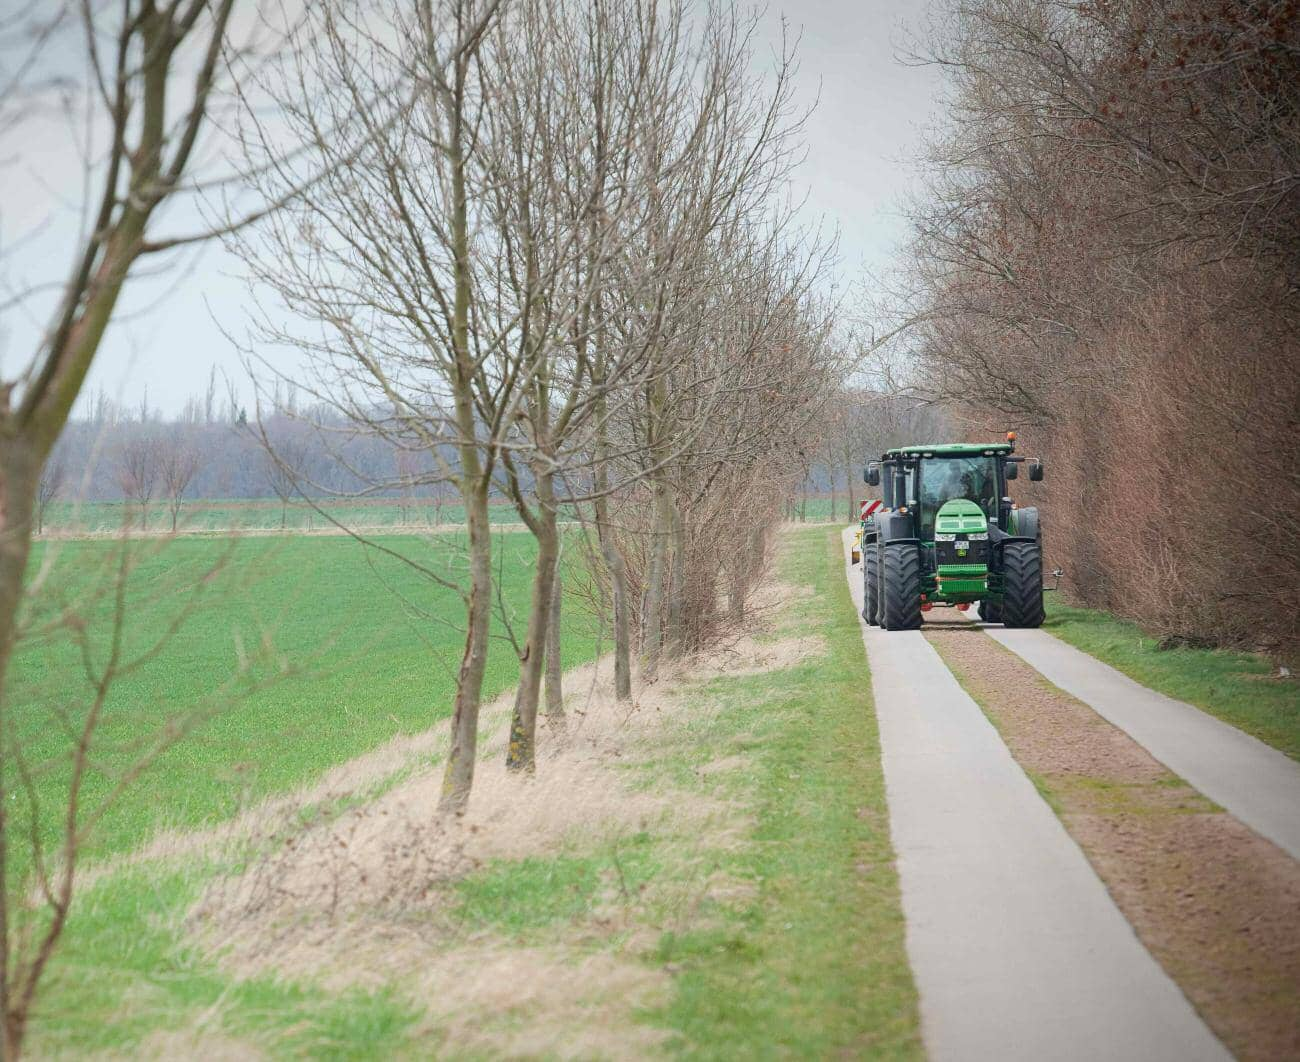 Bridgestone Reap The Rewards After VX TRACTOR Road Run